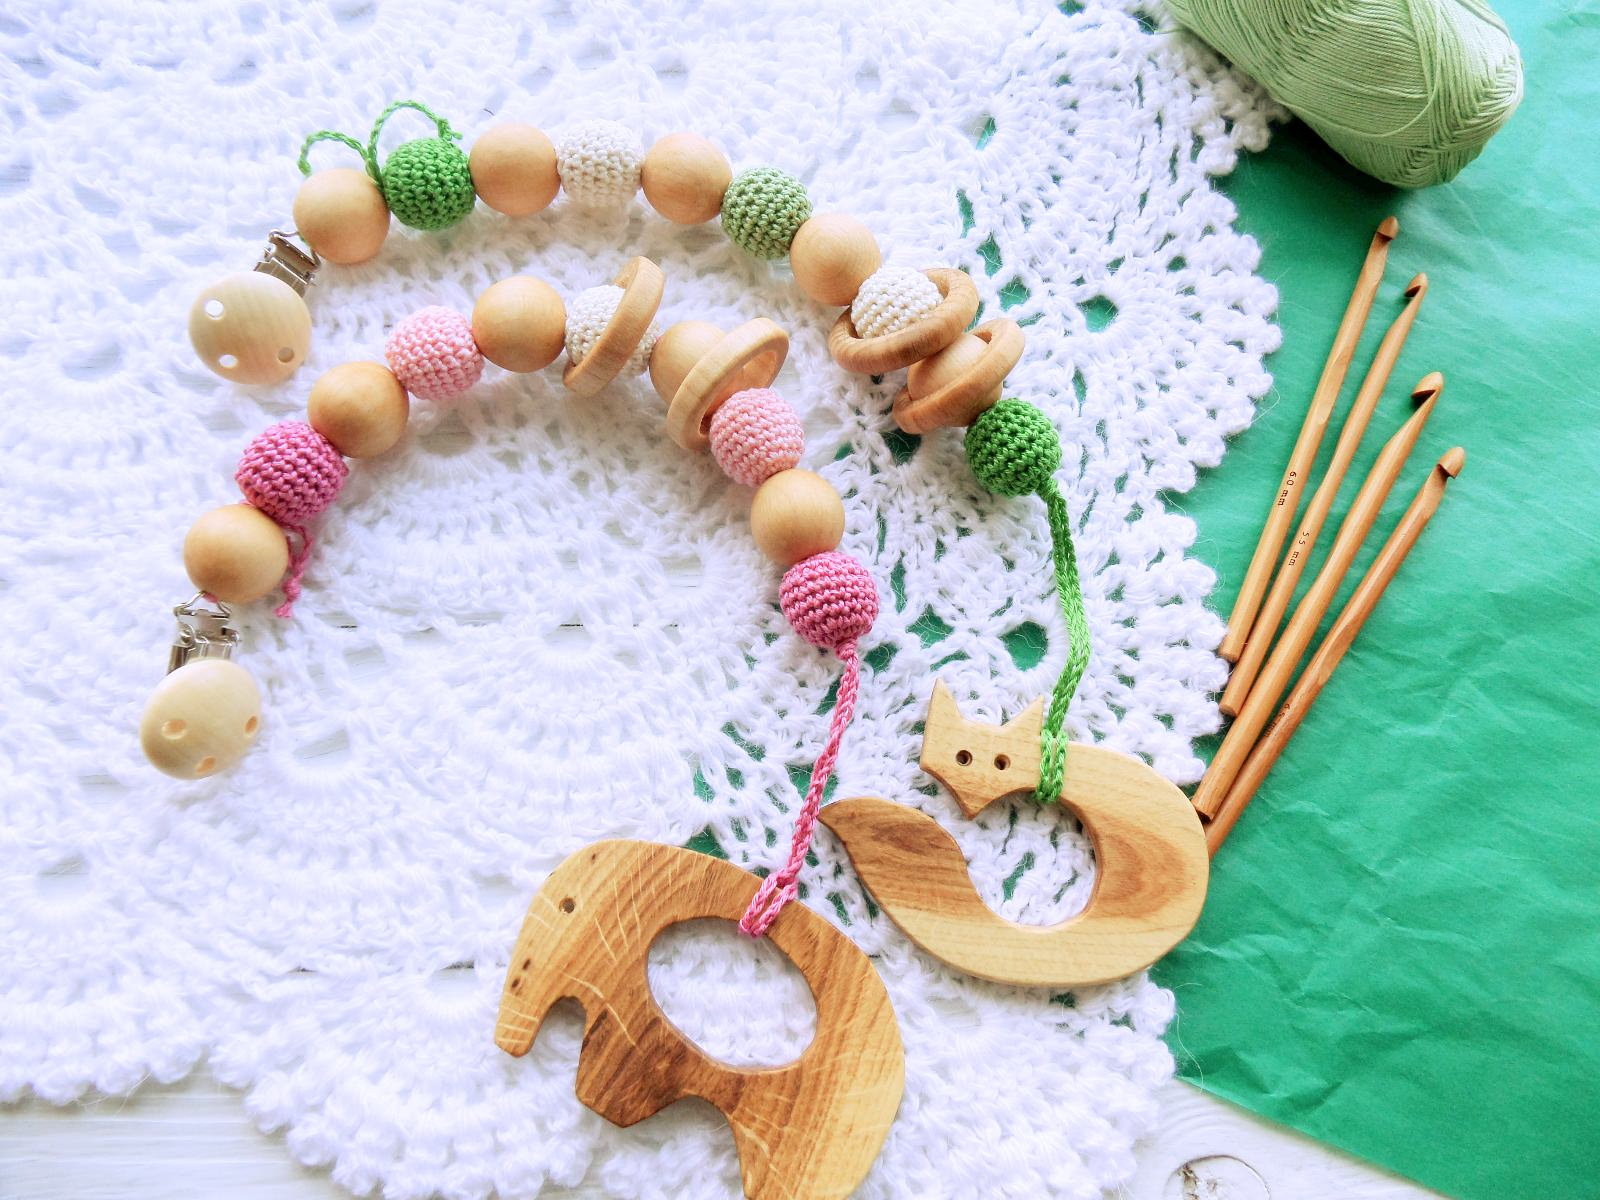 Nursing/teething necklace with clip and toy